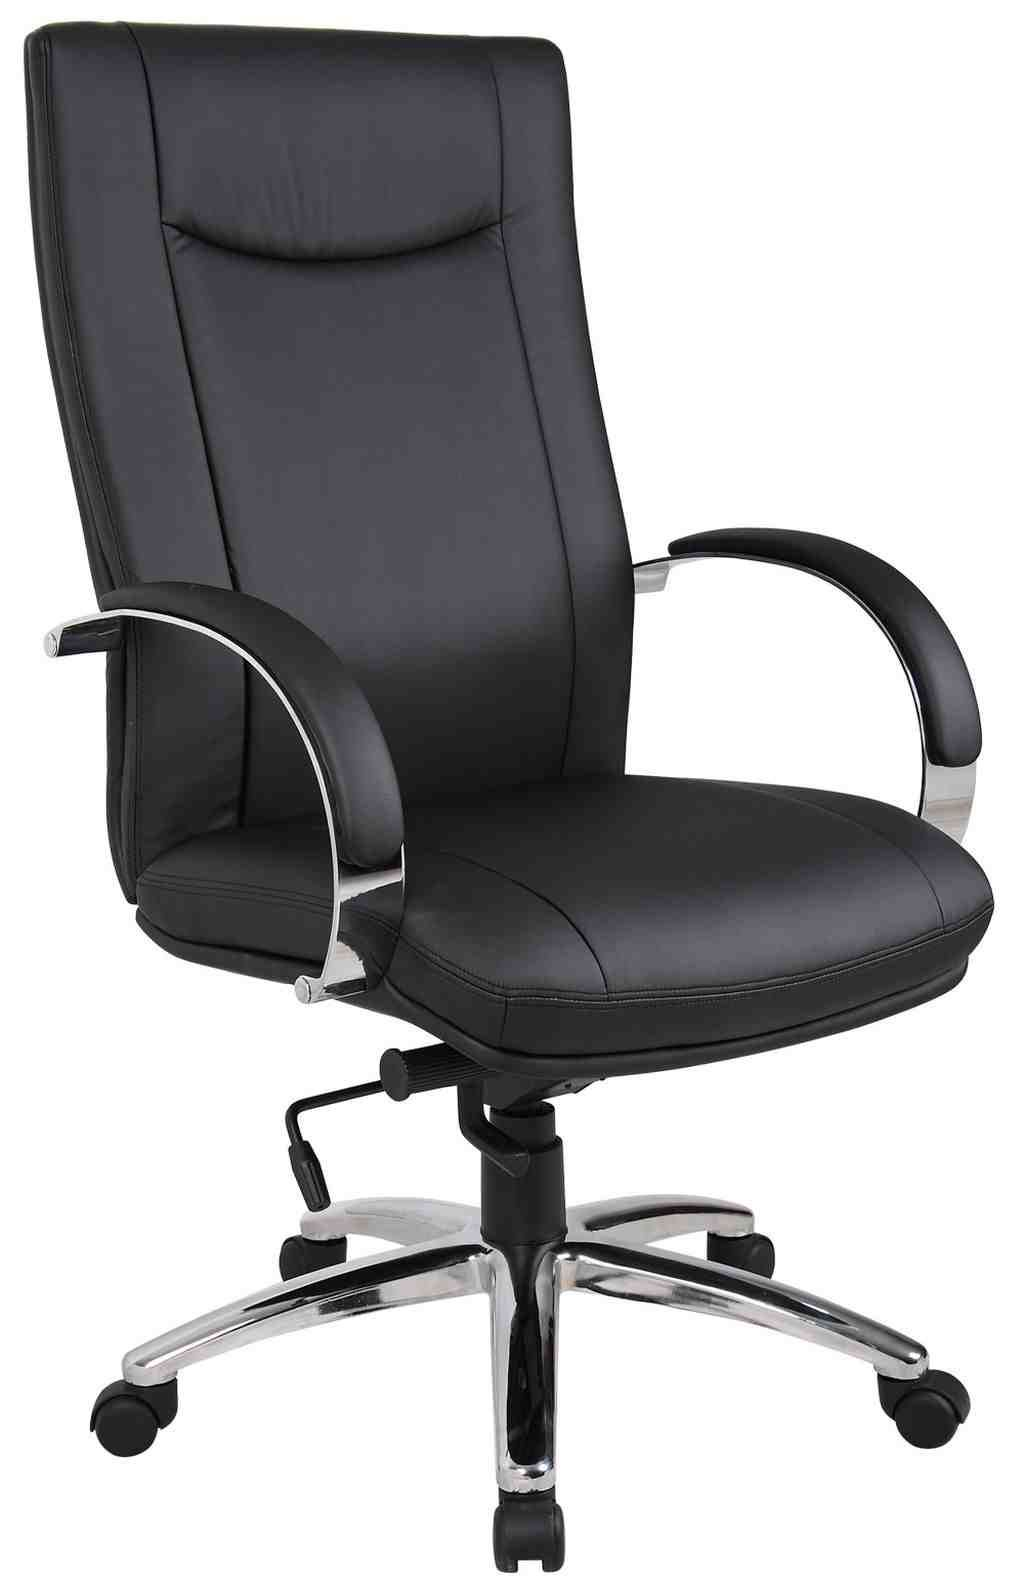 Genuine Leather Office Chair Office Chair Leather Office Chair Executive Chair Leather high back office chair